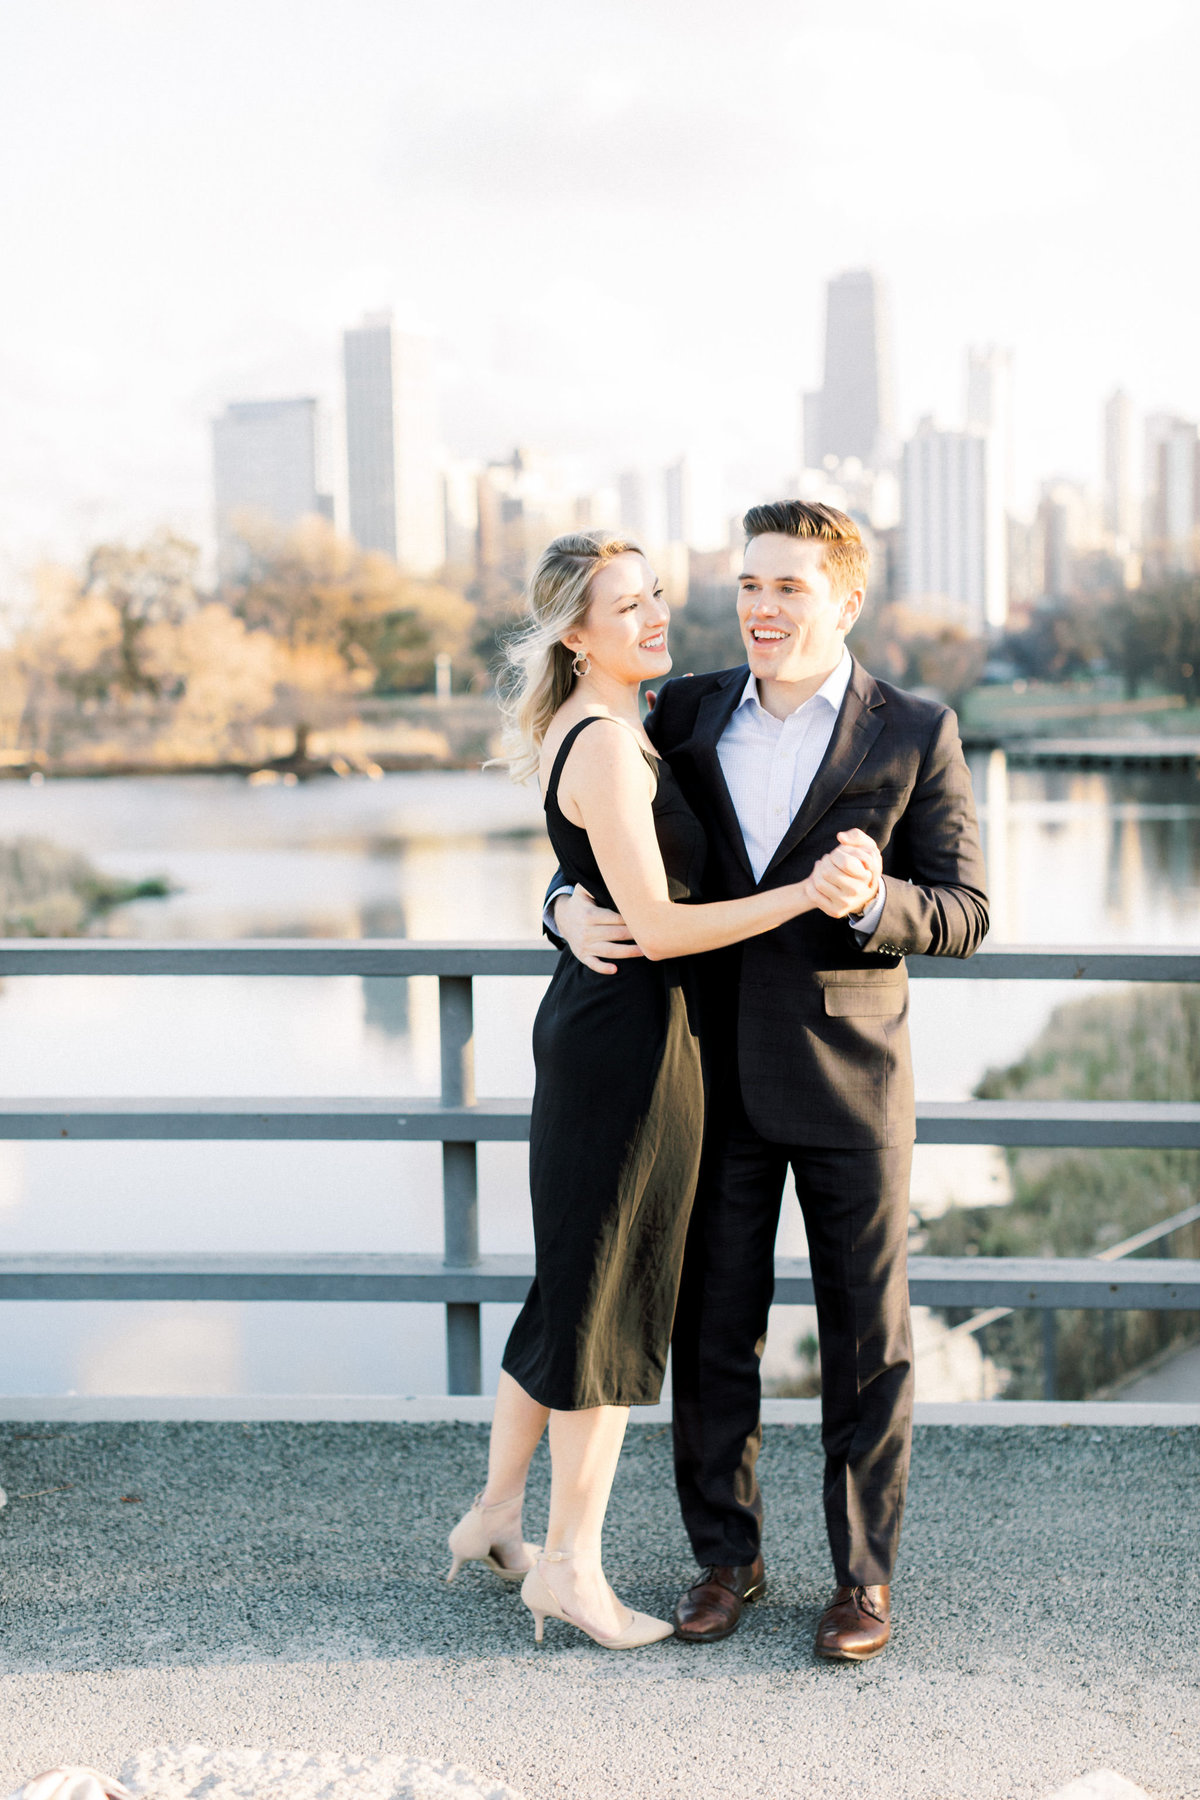 TiffaneyChildsPhotography-ChicagoWeddingPhotographer-AnneMarie+Connor-LincolnParkNatureBoardwalkEngagementSession-126